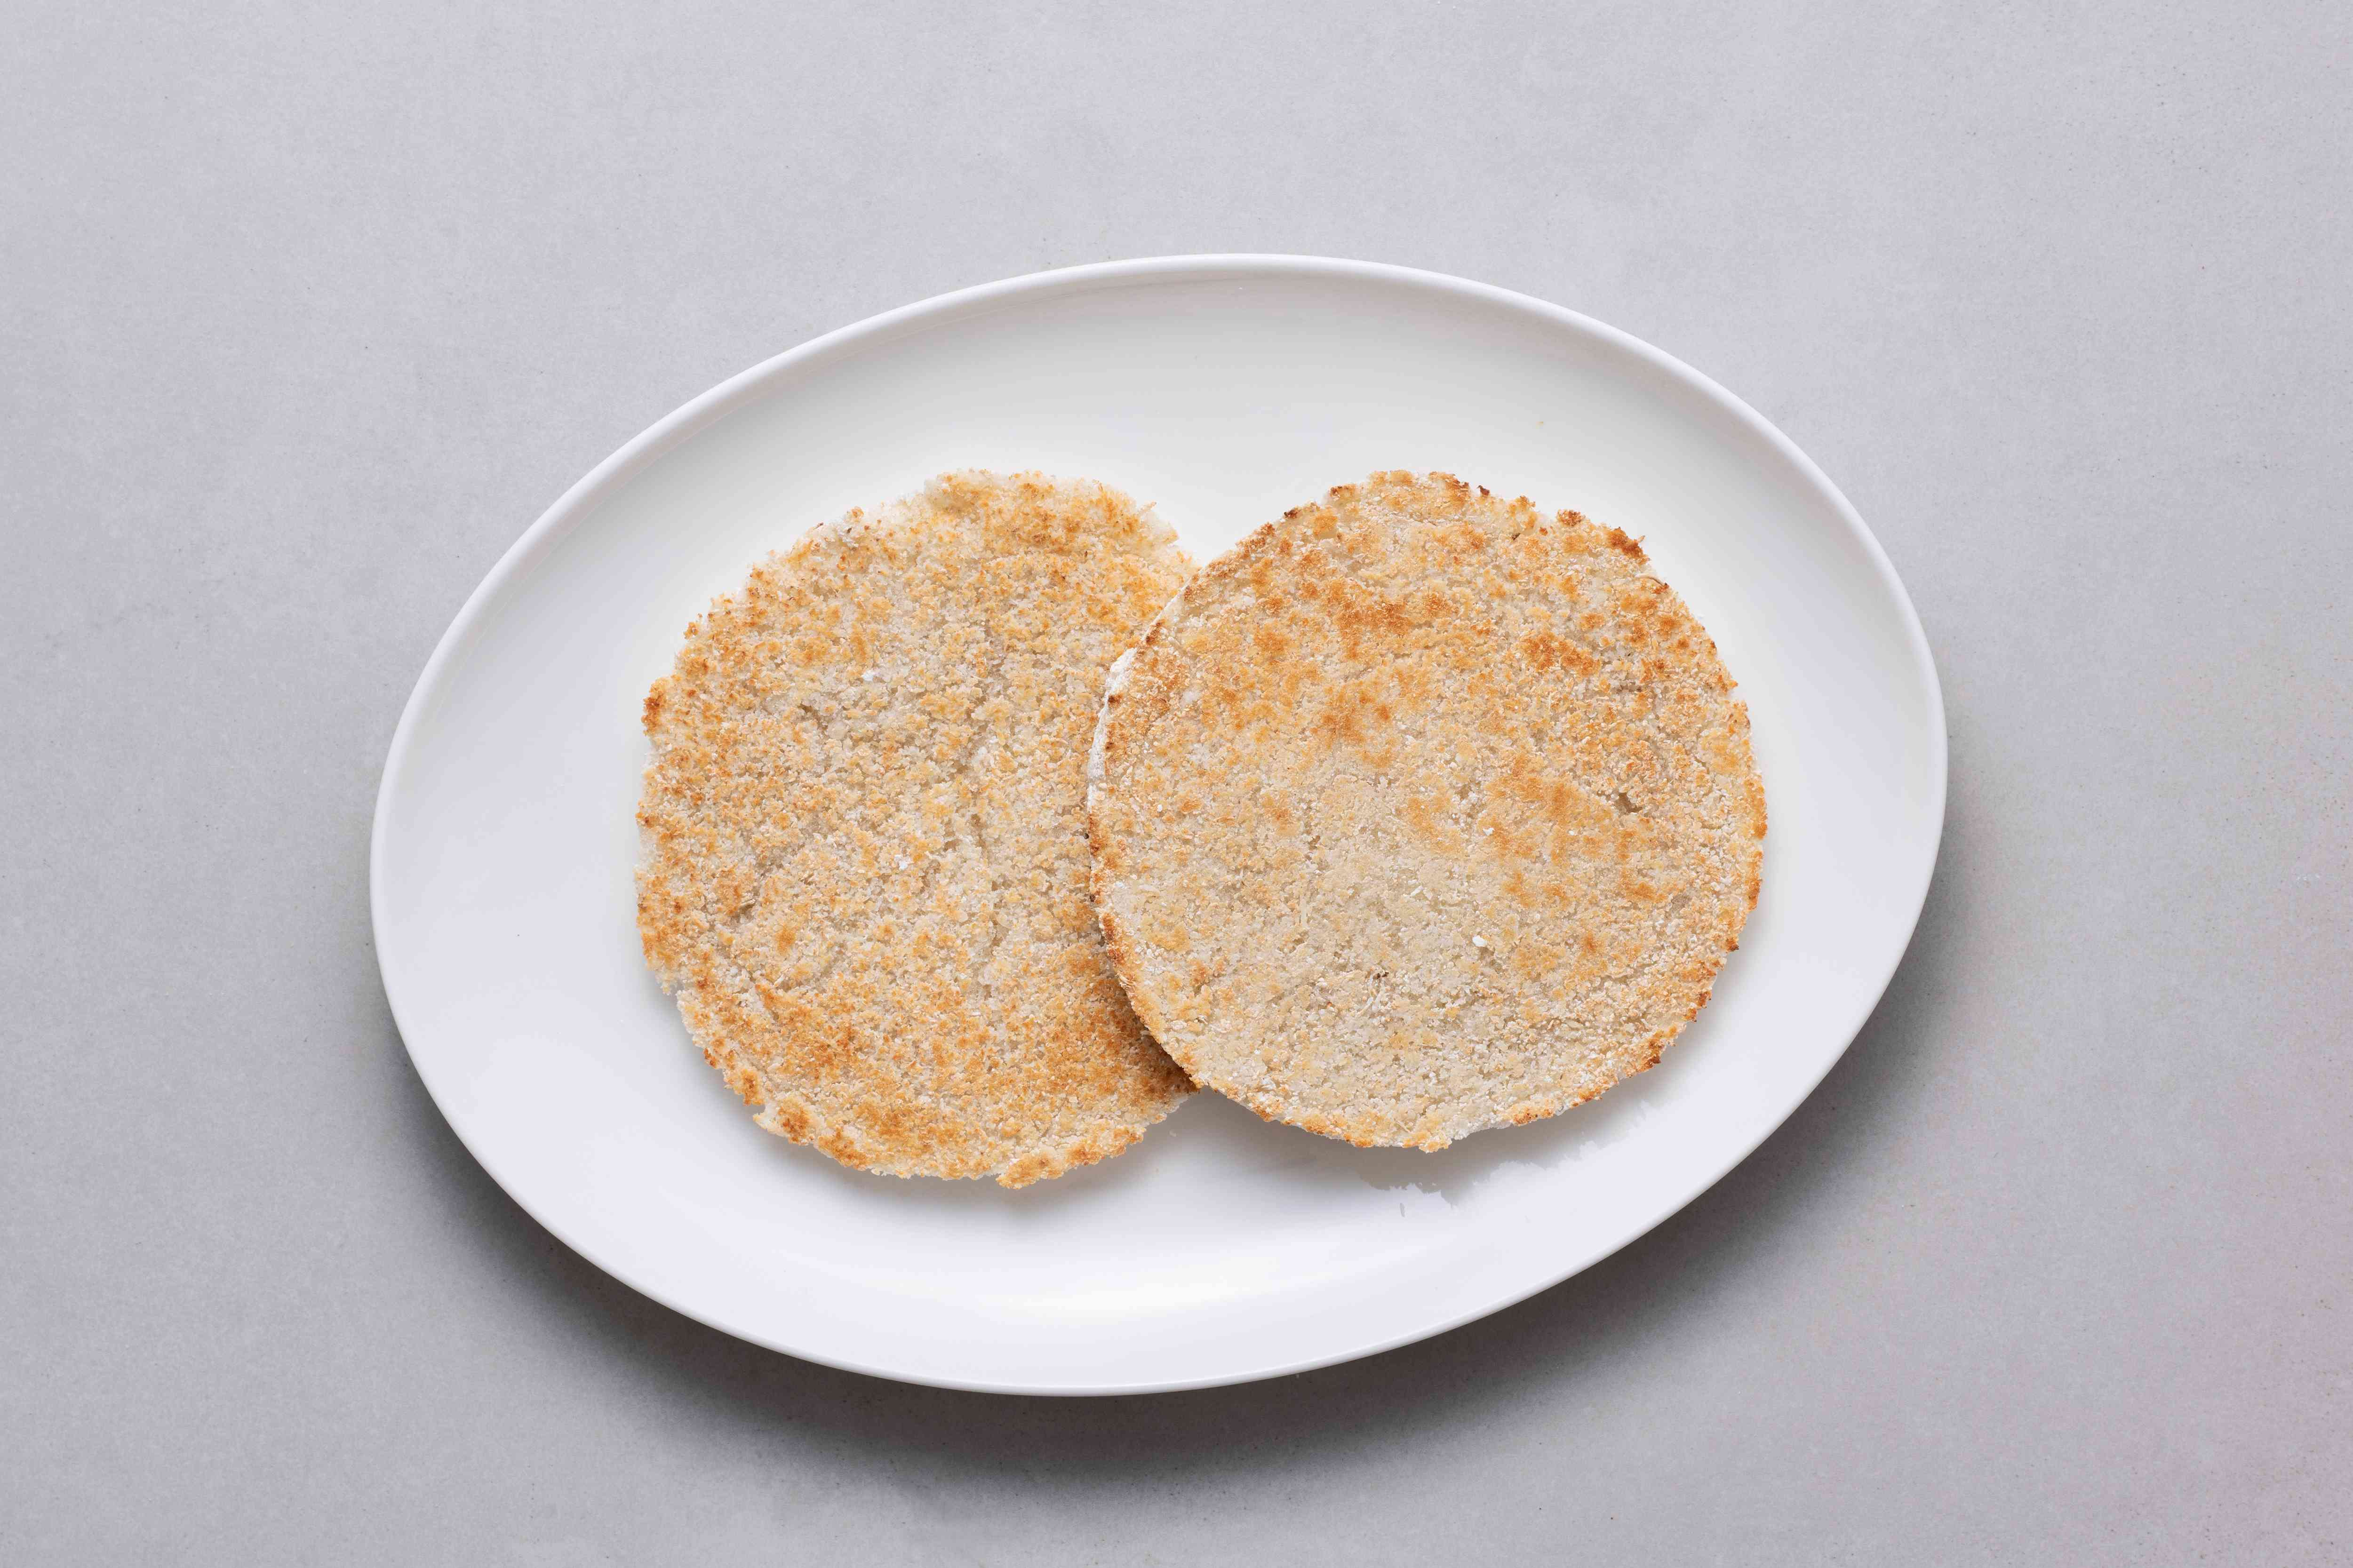 yucca cakes on a plate